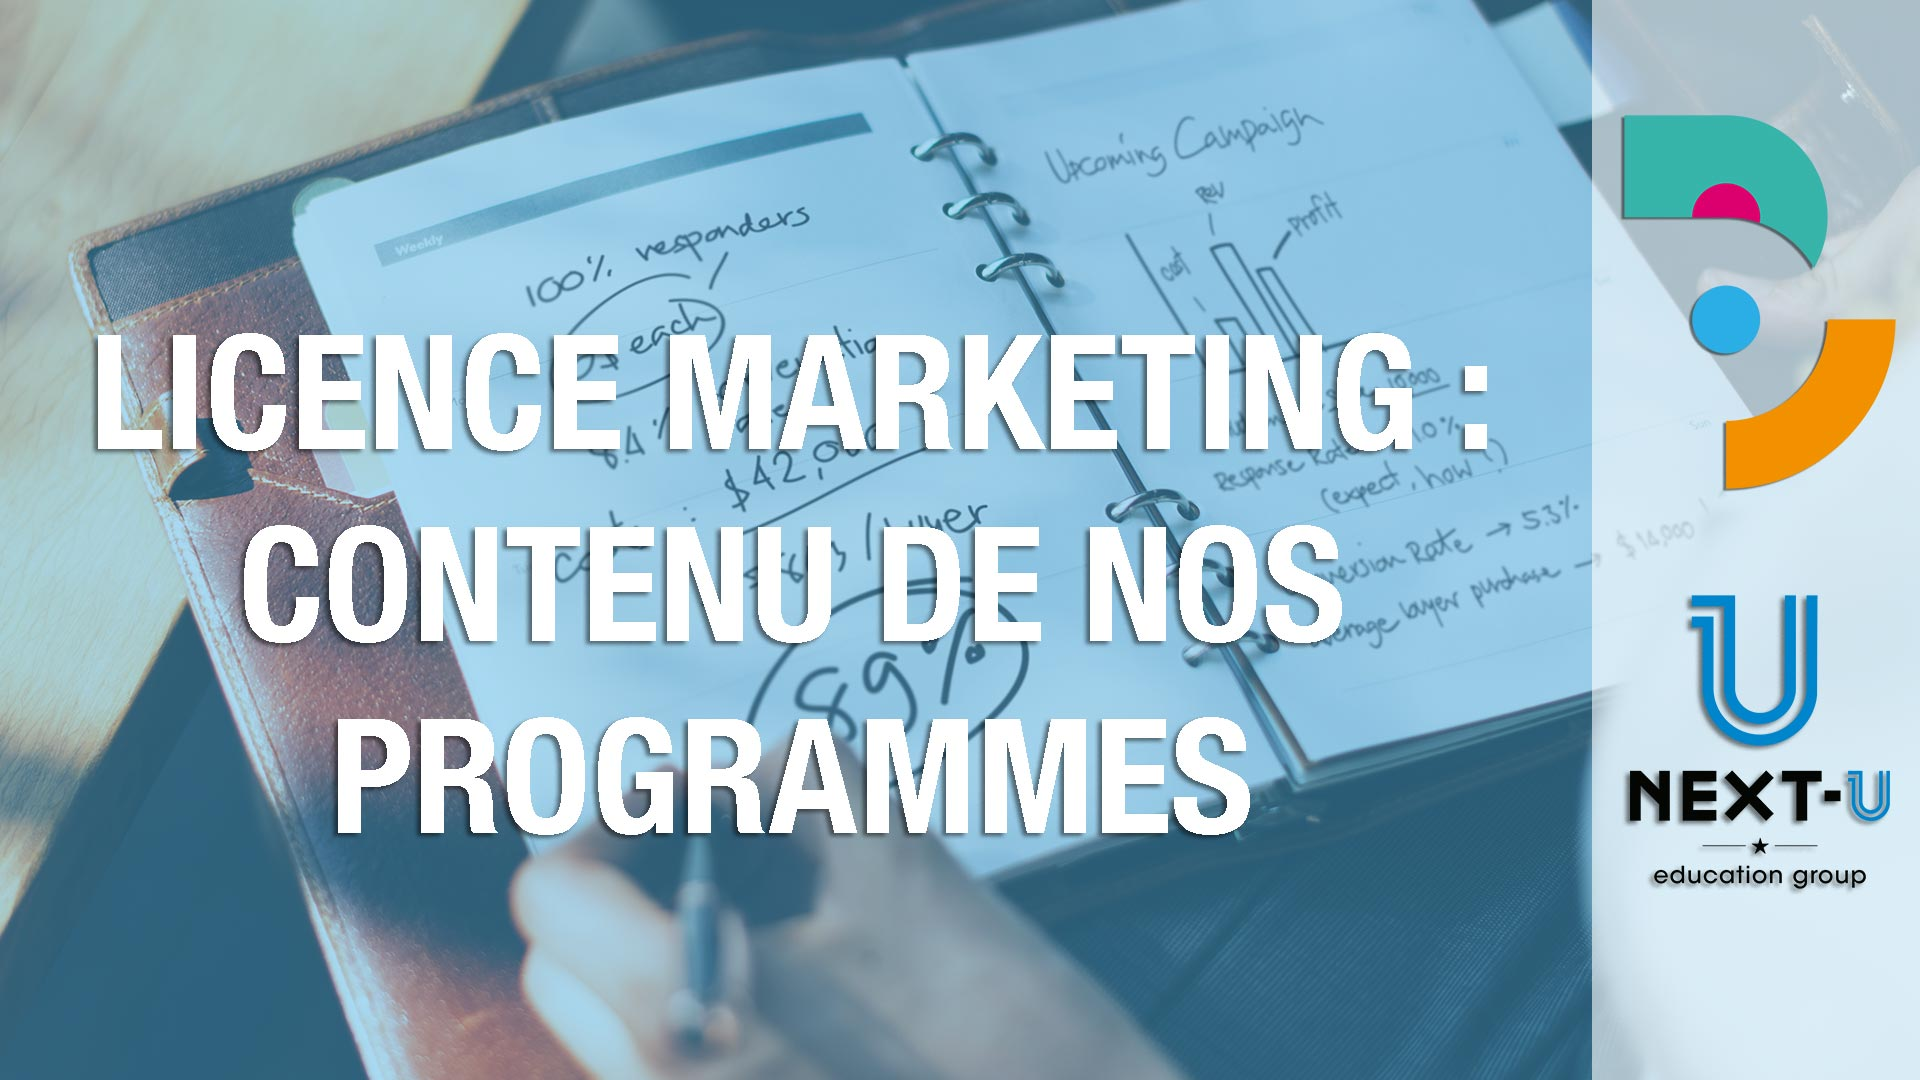 Licence marketing : contenu de nos programmes